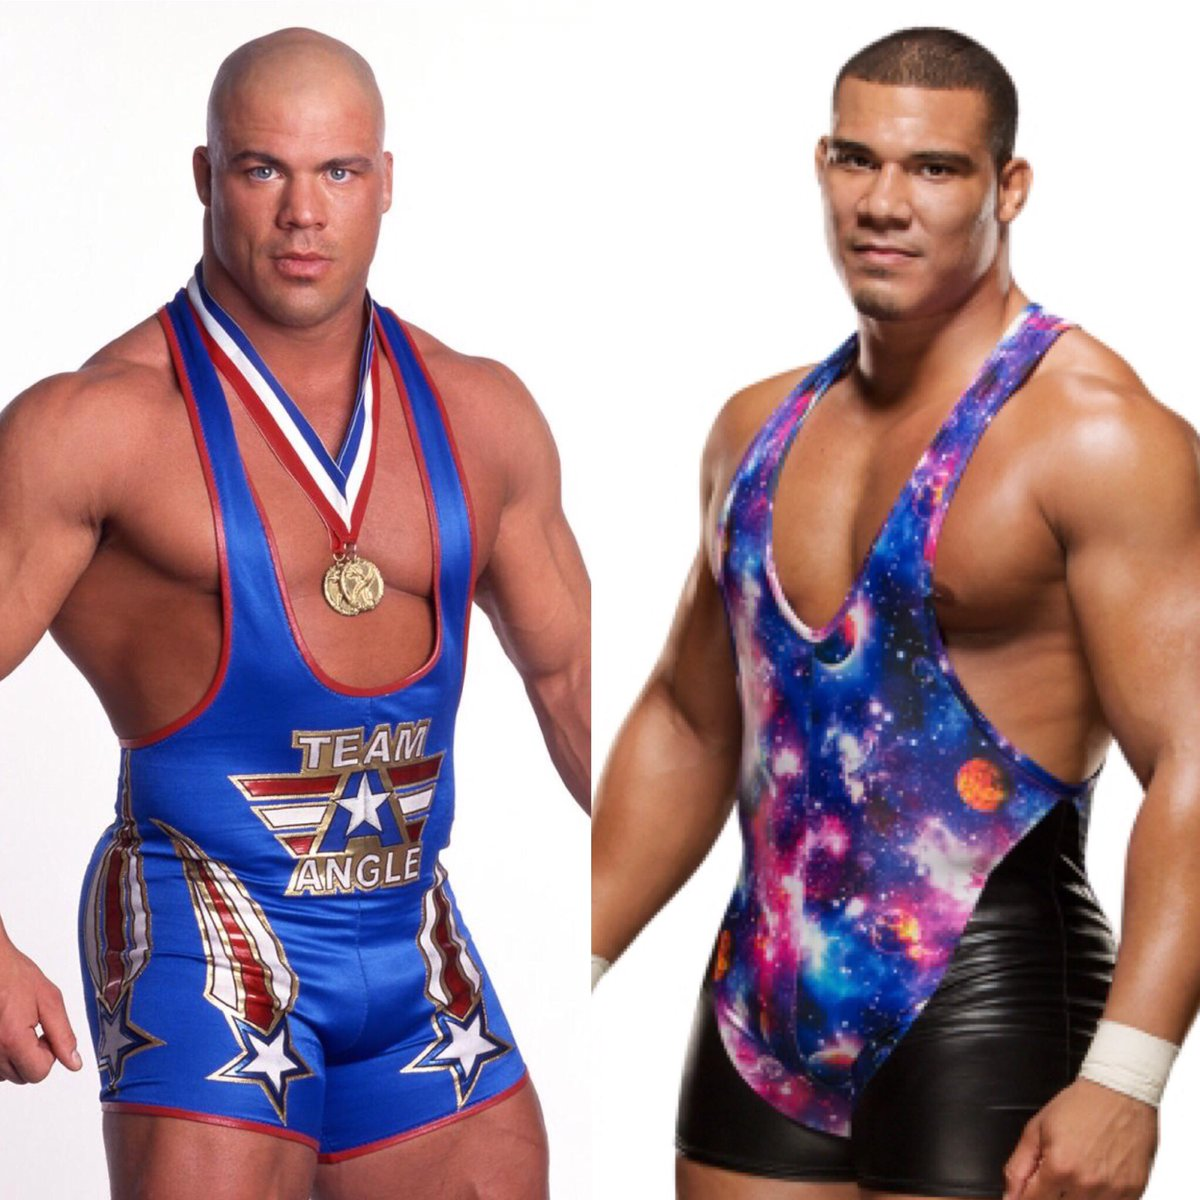 Like father, like son. #WWE #Raw @JasonJordanJJ @RealKurtAngle   https://t.co/U338IL5prz